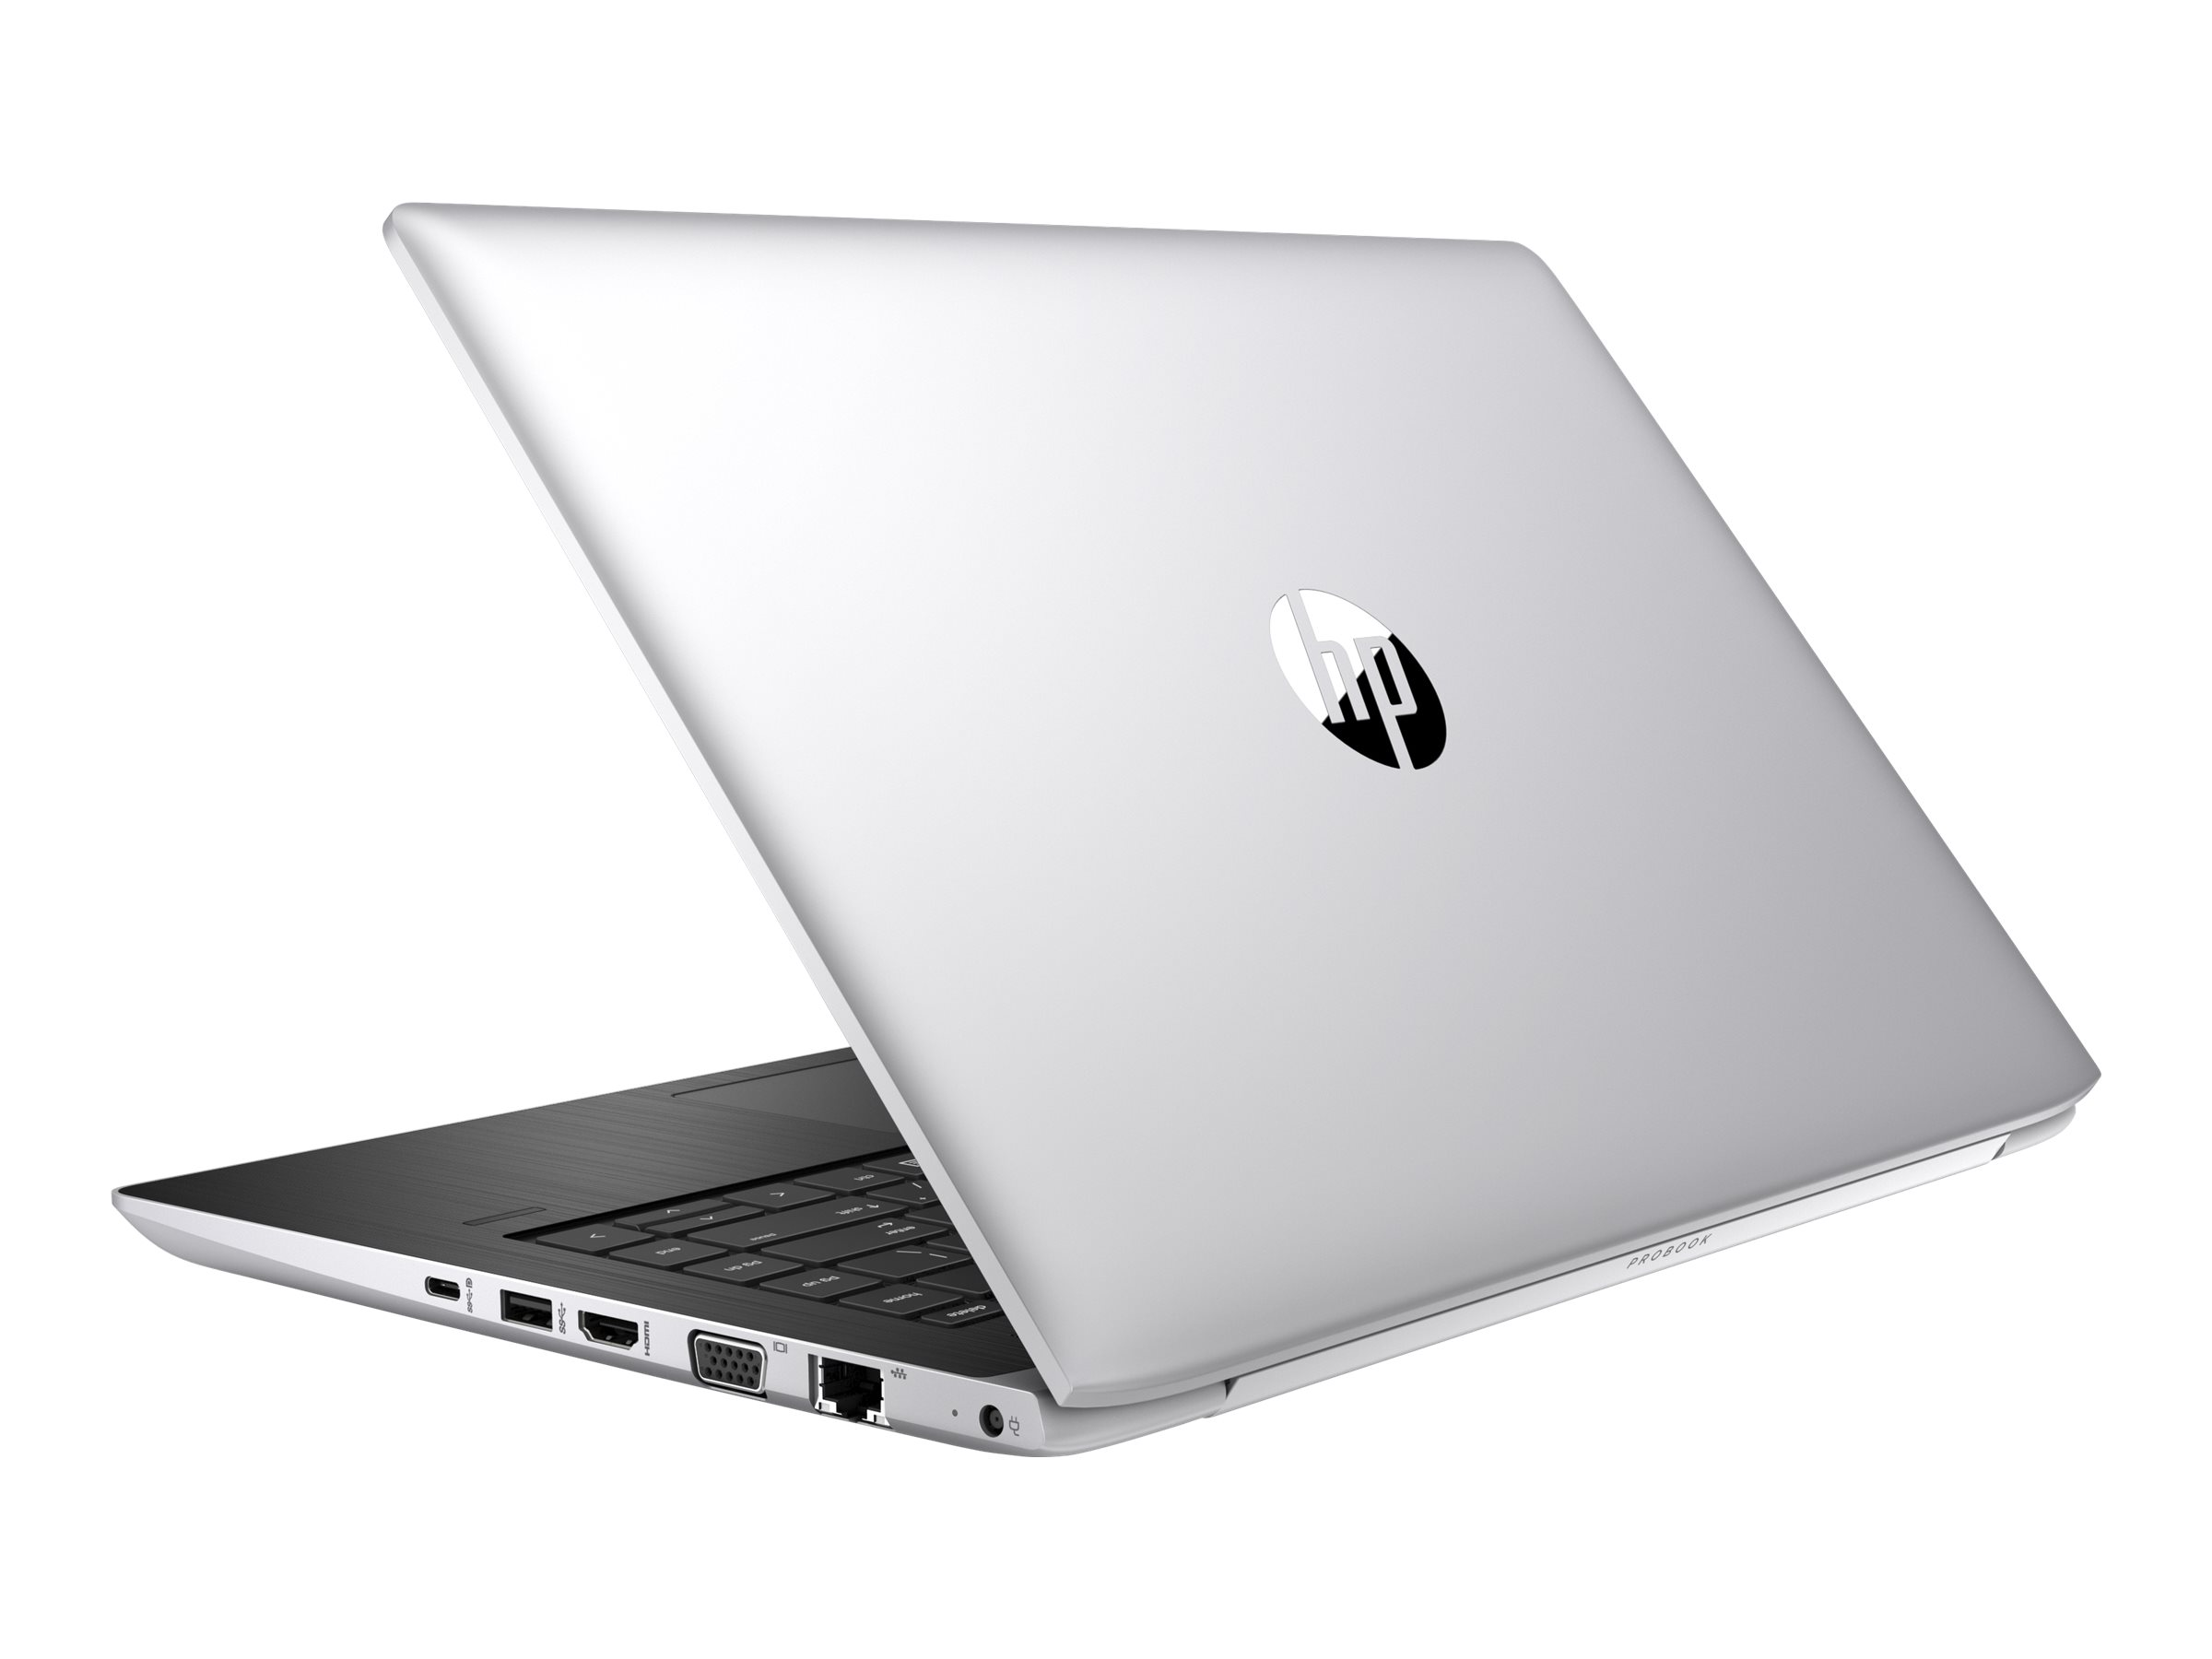 """HP ProBook 440 G5 14"""" Core i7 8550U 8 GB RAM 256 GB SSD UK 2RS35EA ABU HP Laptops puters Products munications Solutions UK Ltd"""